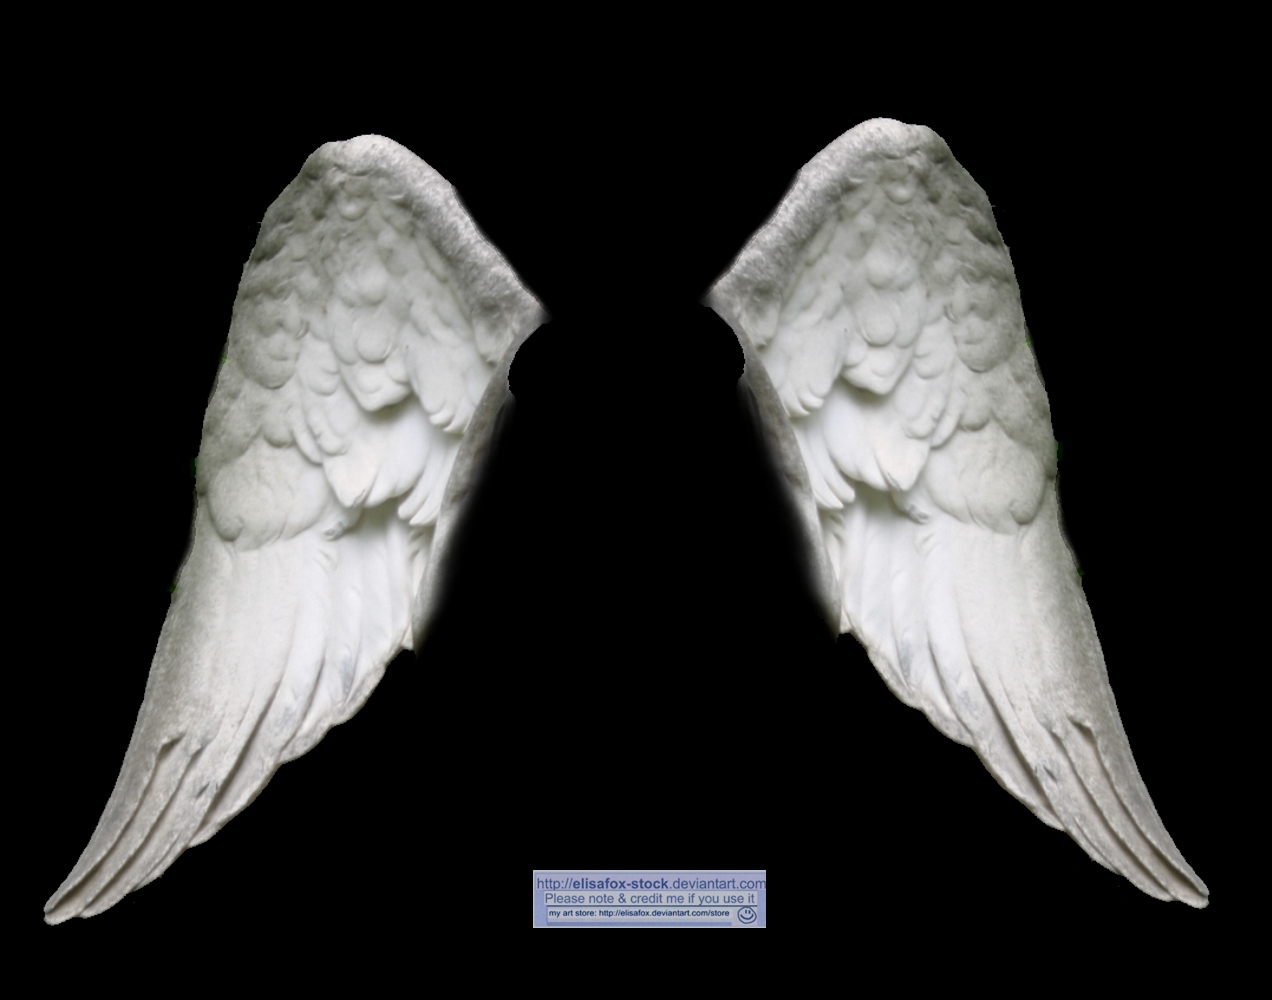 angel wings black background - photo #37